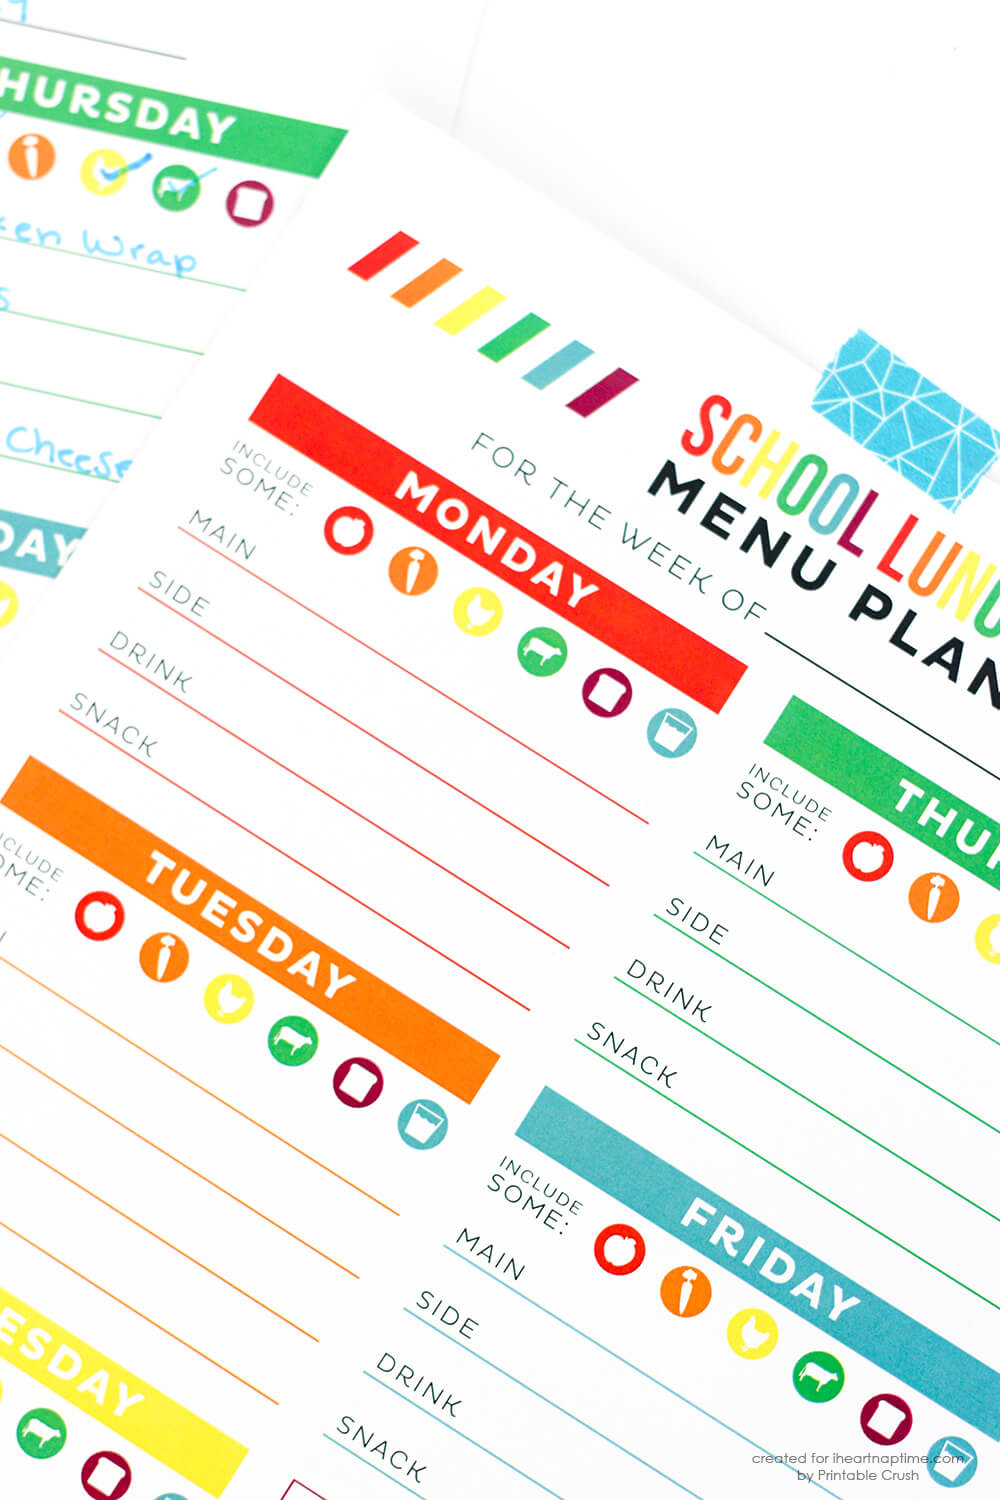 Print out these FREE School Organization Printables to help you stay organized this school year!